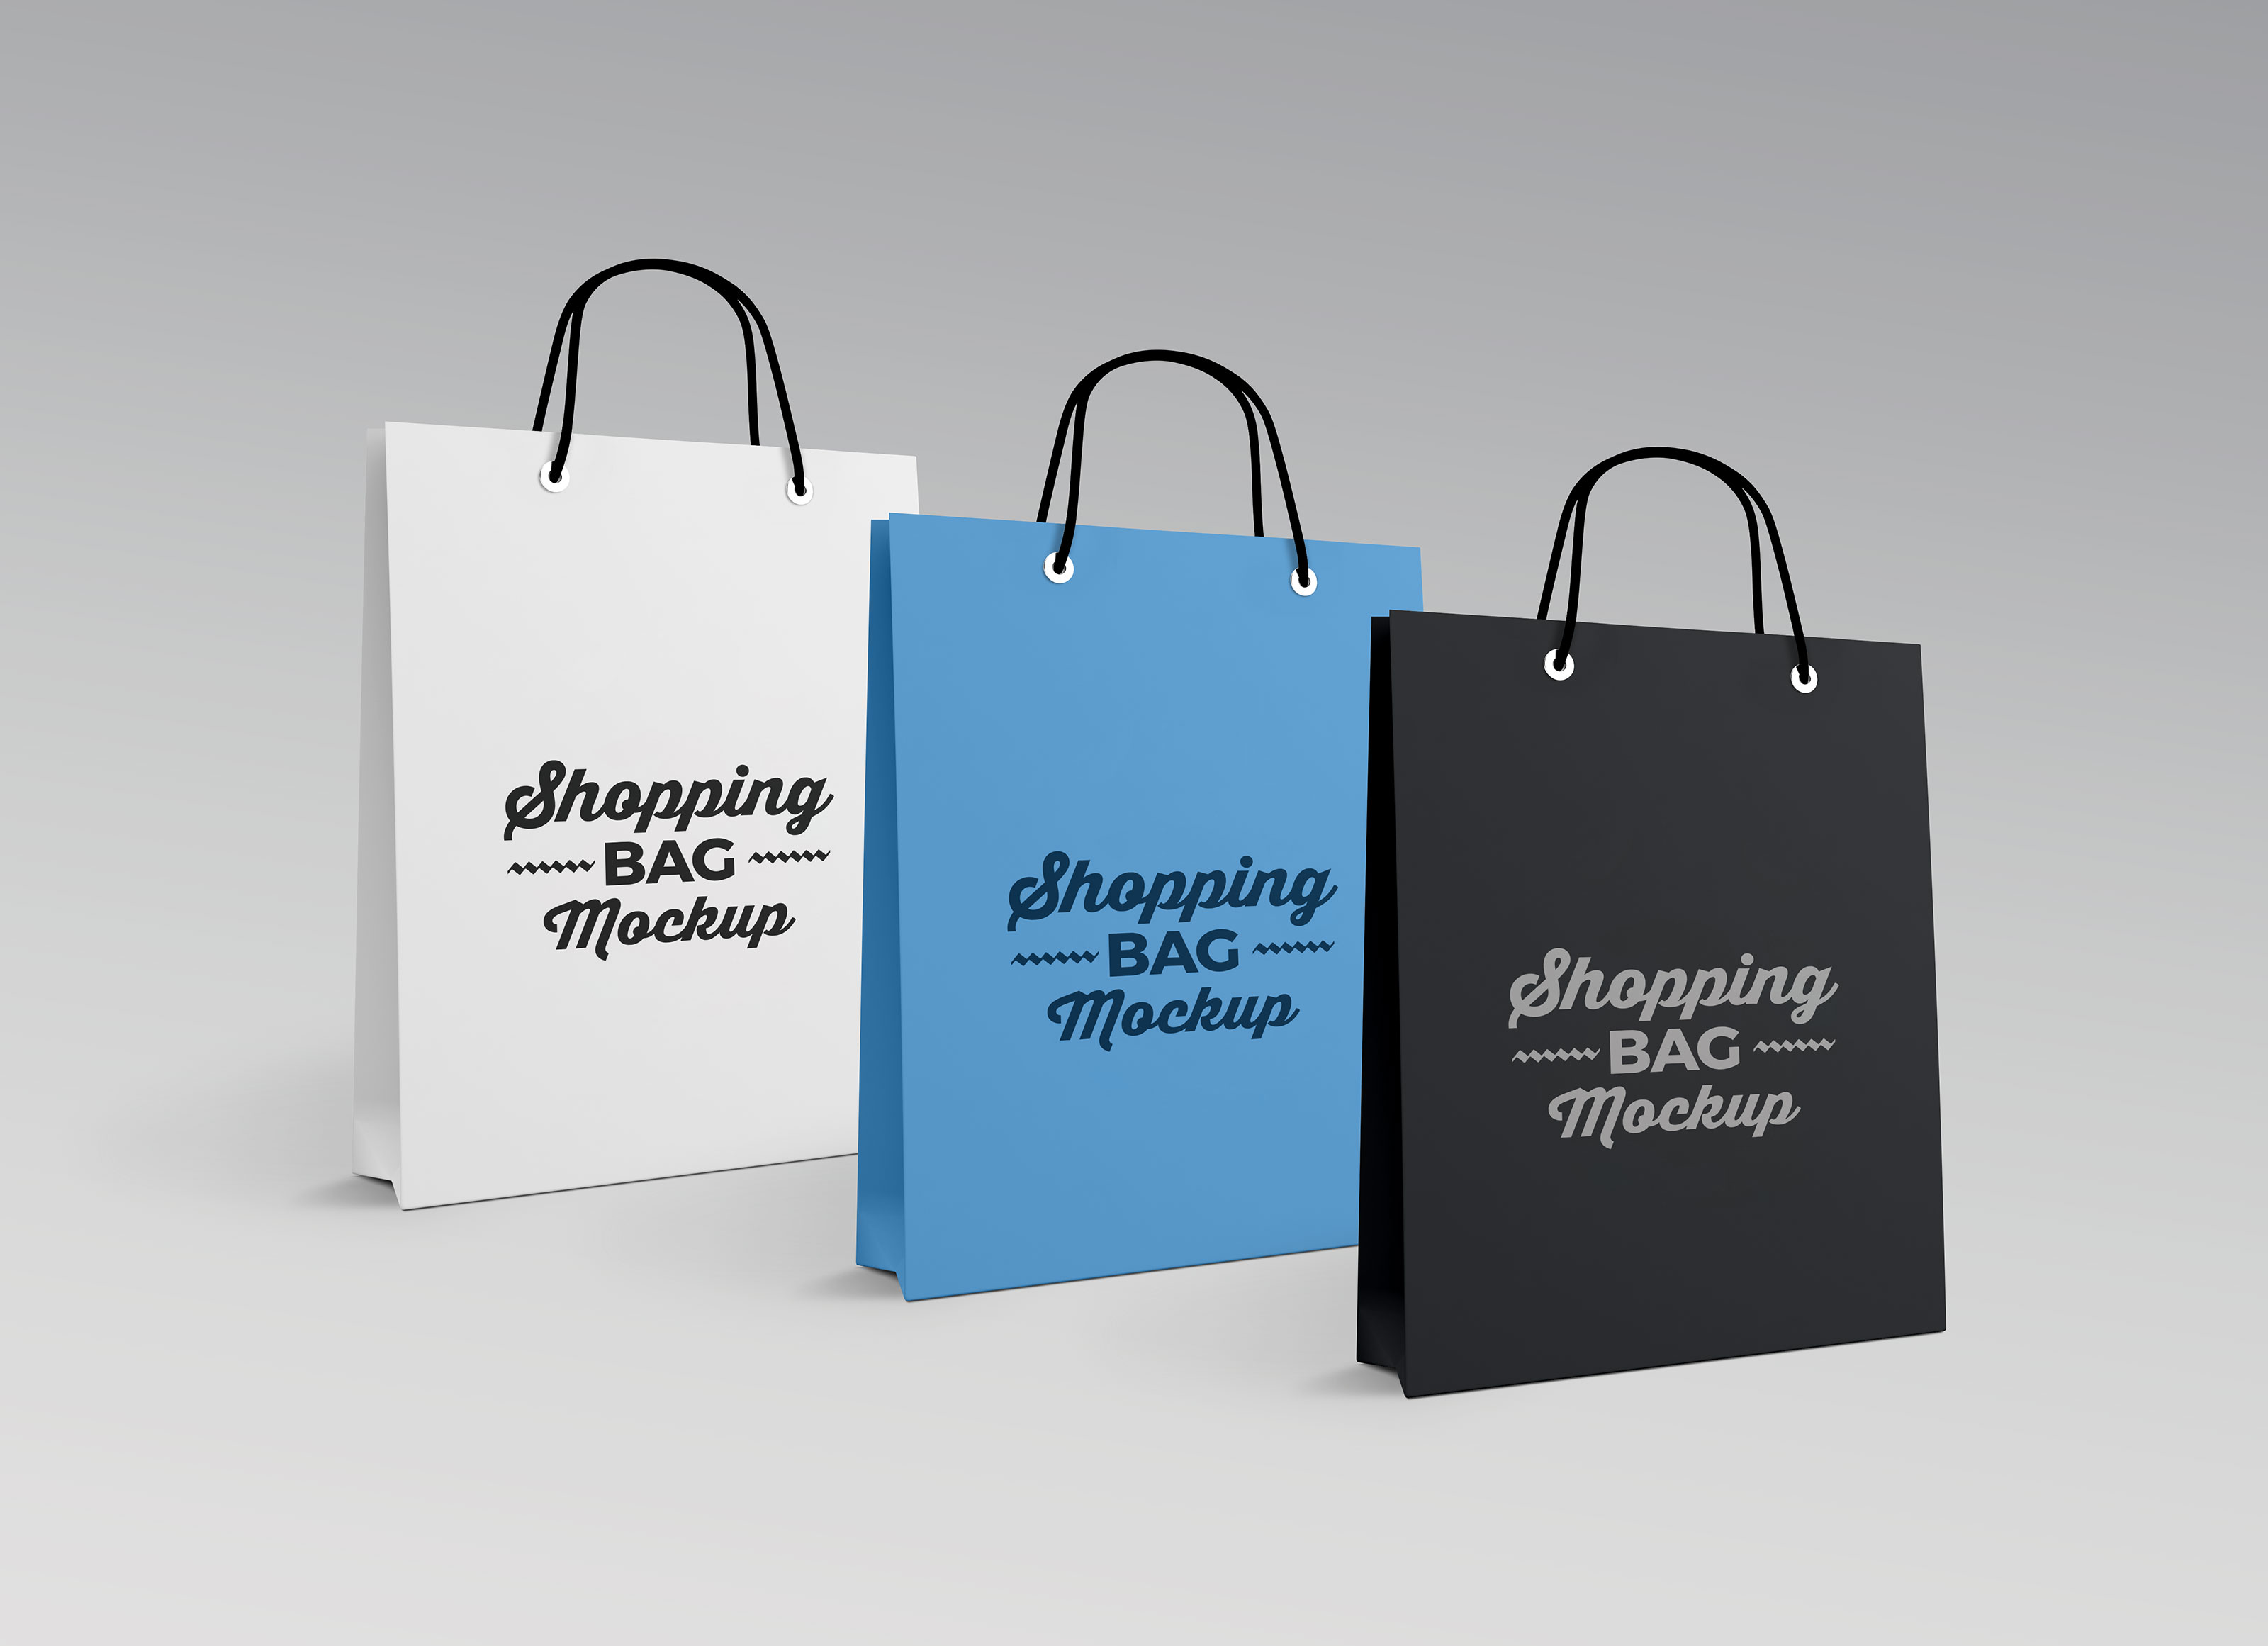 Free-Photorealistic-Paper-Shopping-Bag-Mockup-PSD-File